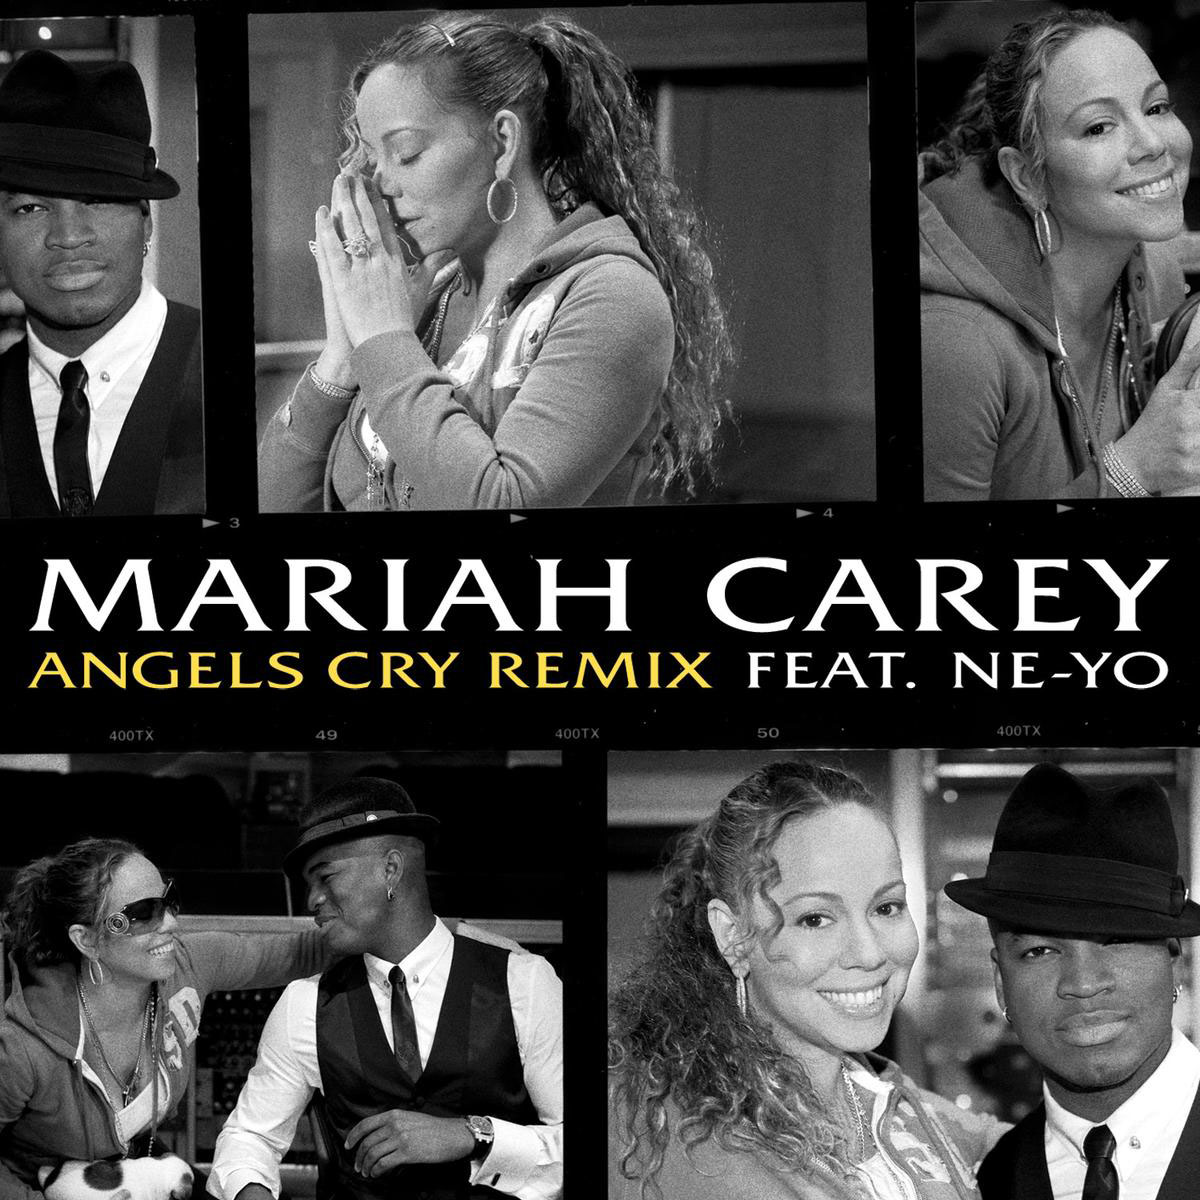 It's kinda like a love song, but you could take it any way you want - - Mariah Carey